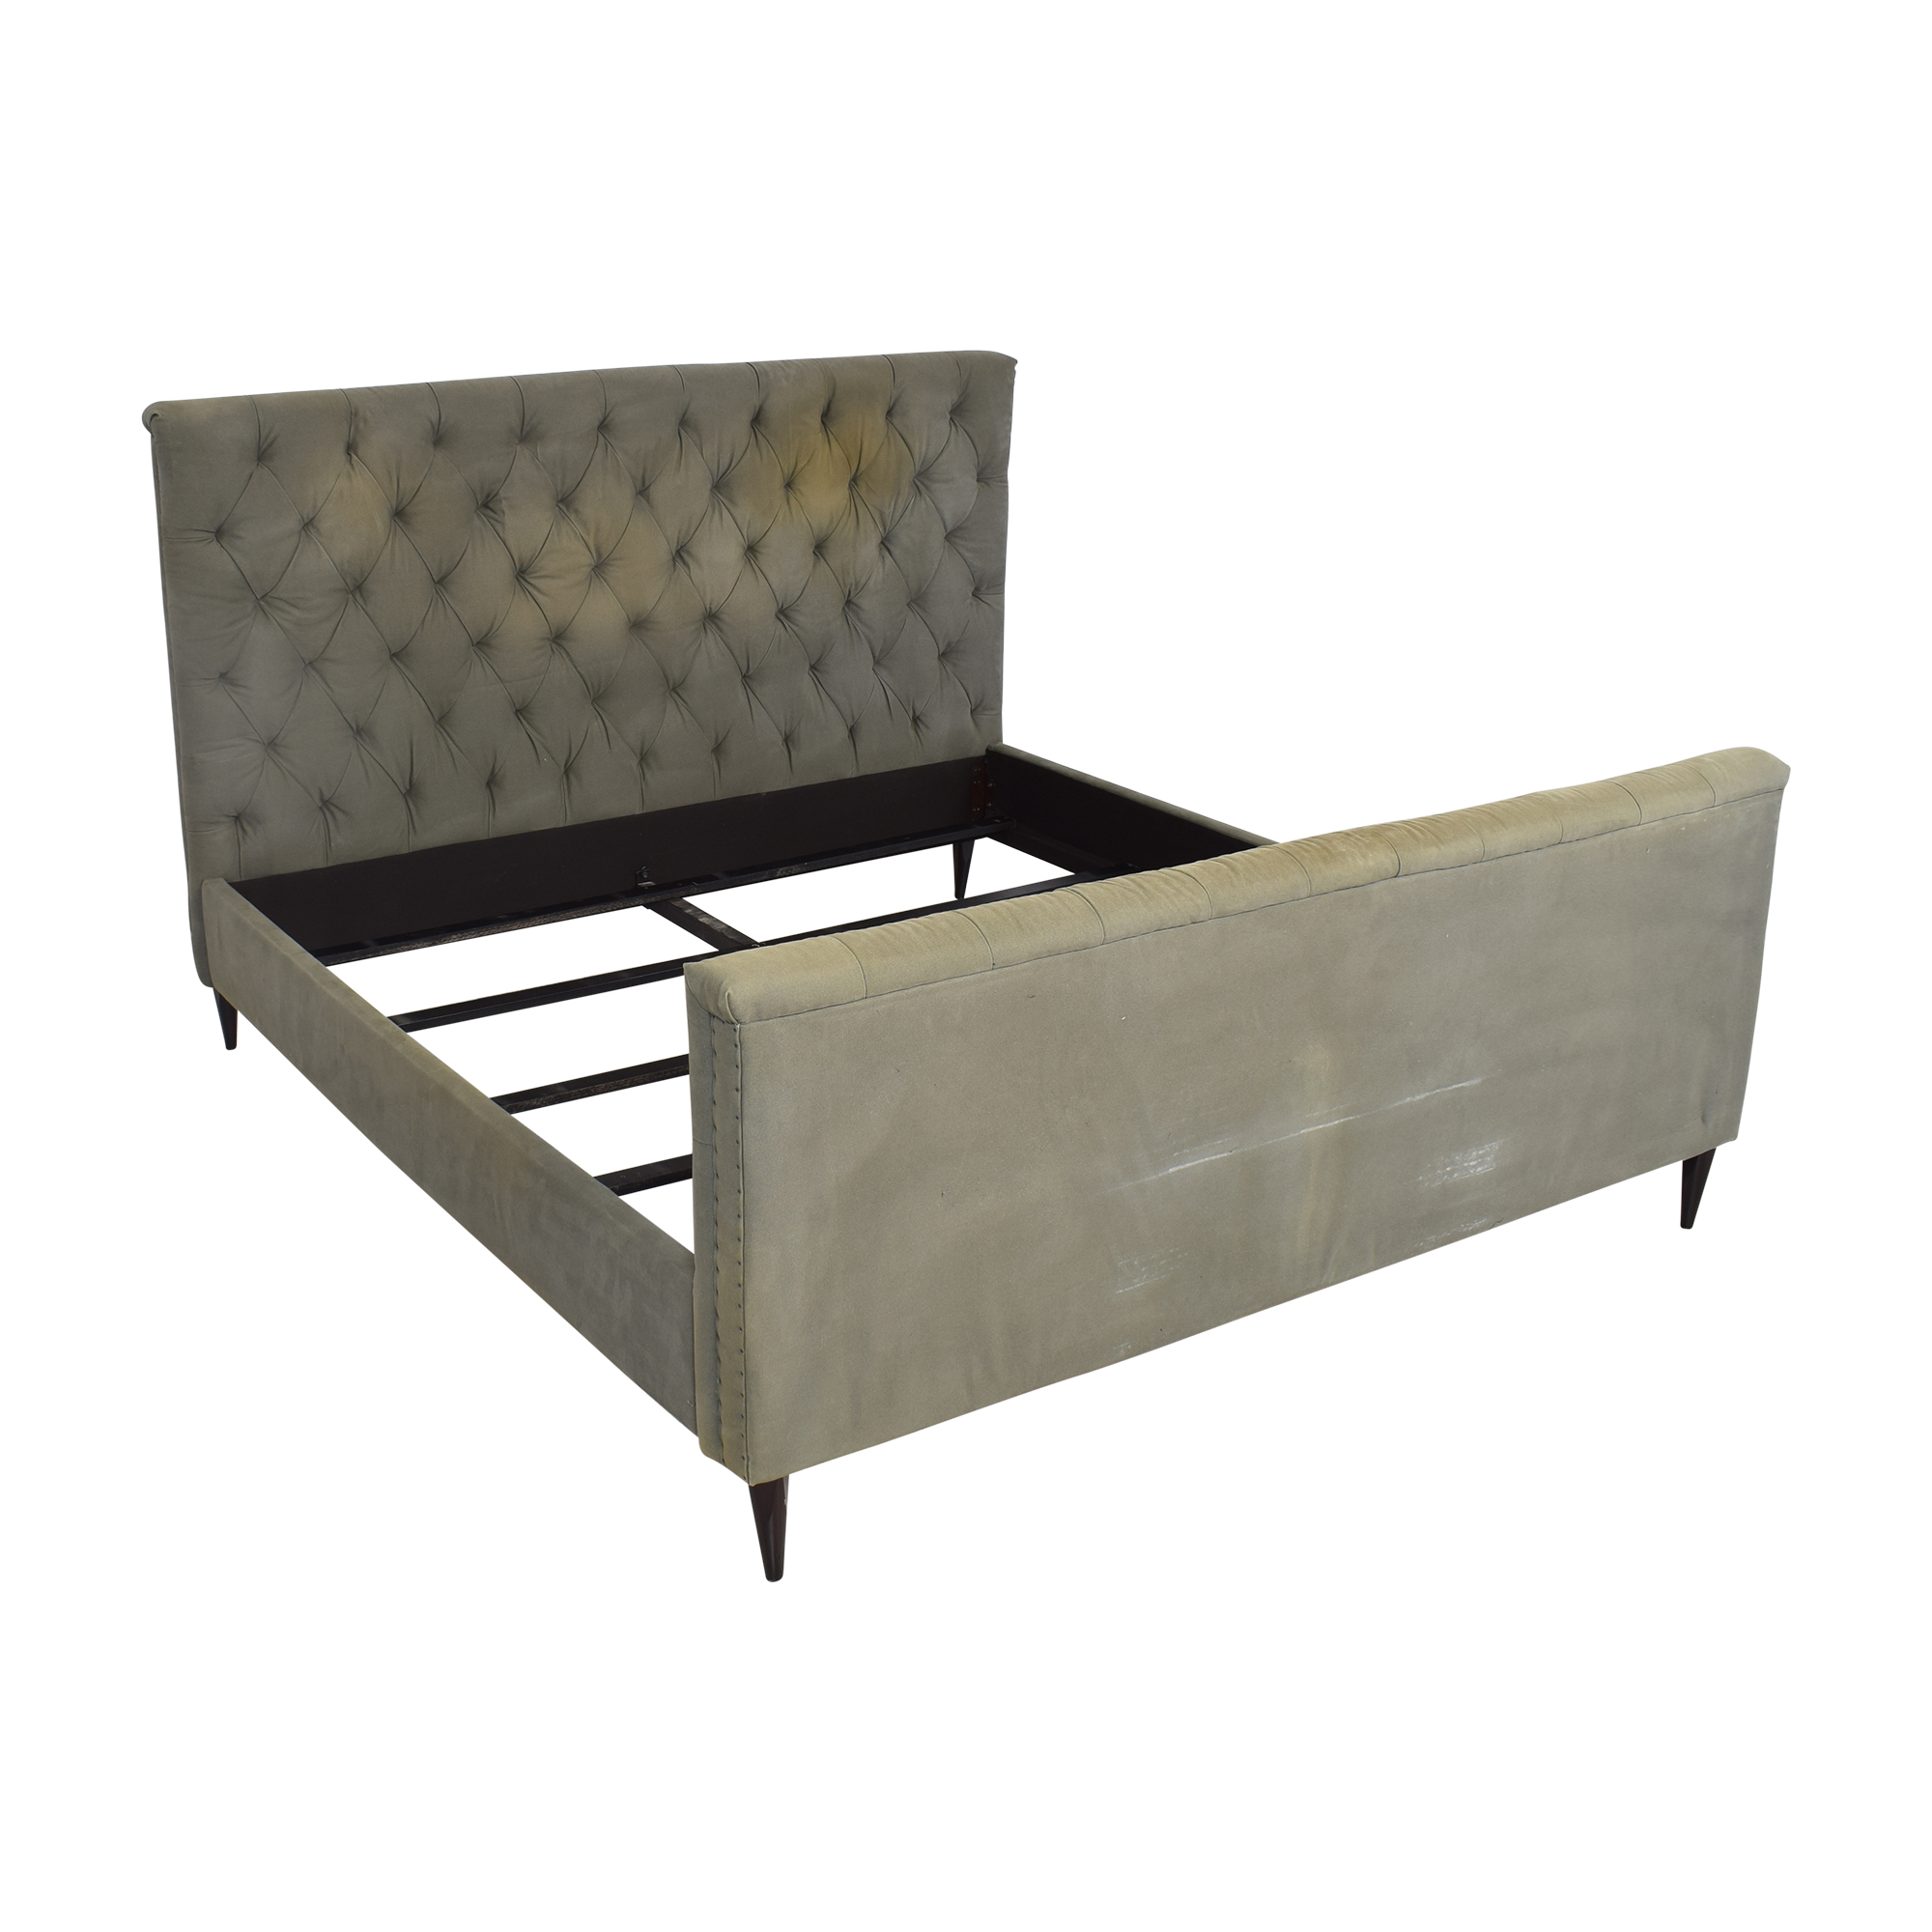 Restoration Hardware Restoration Hardware Chesterfield King Bed used